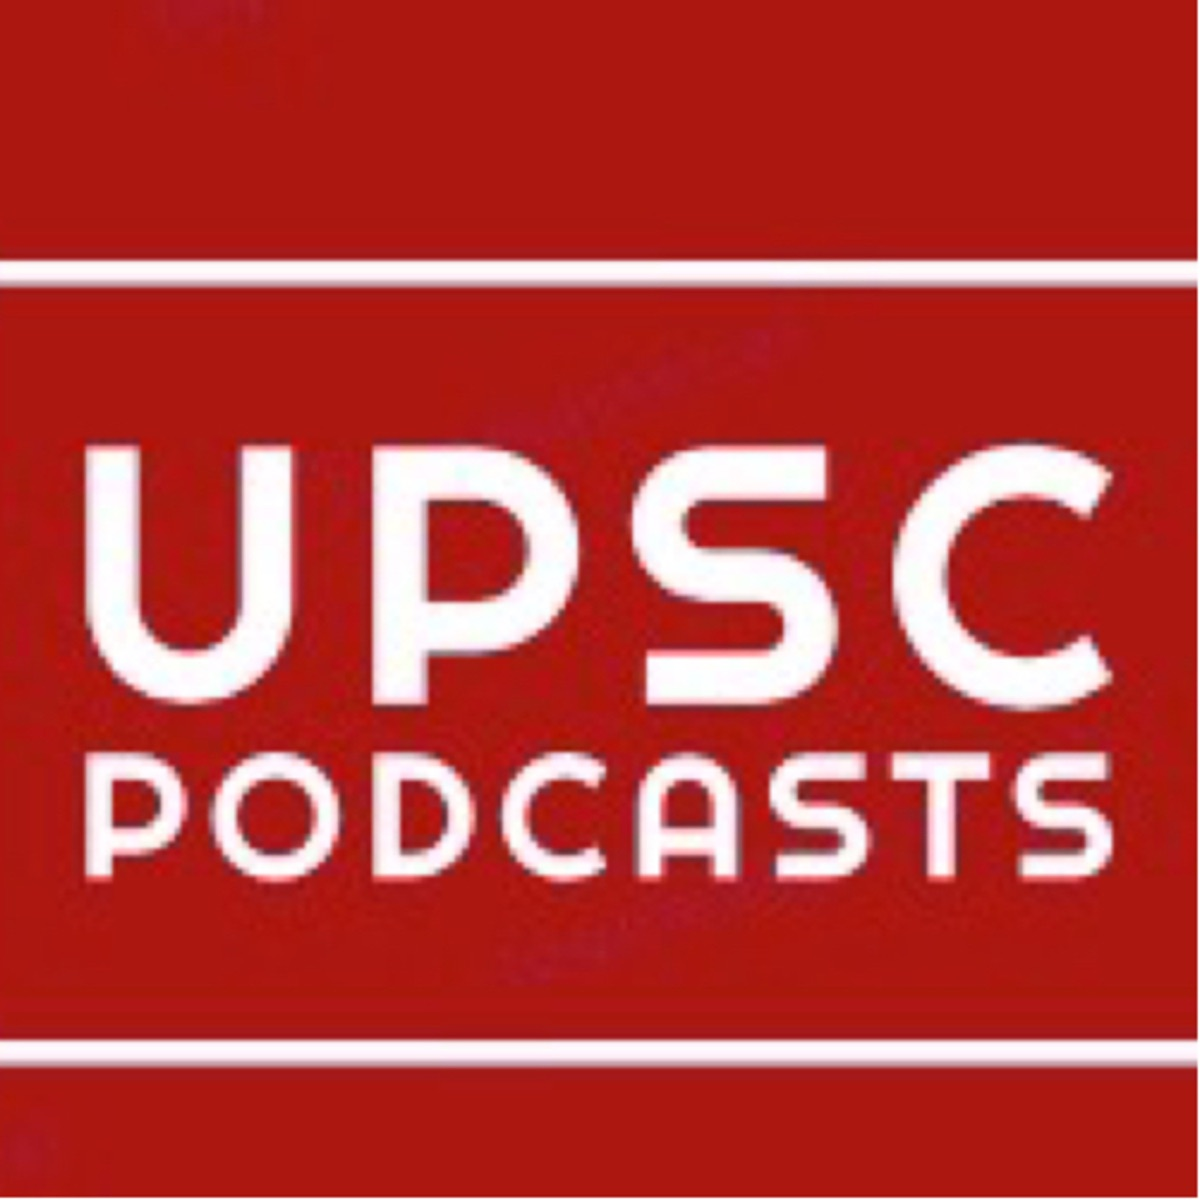 UPSC Podcasts